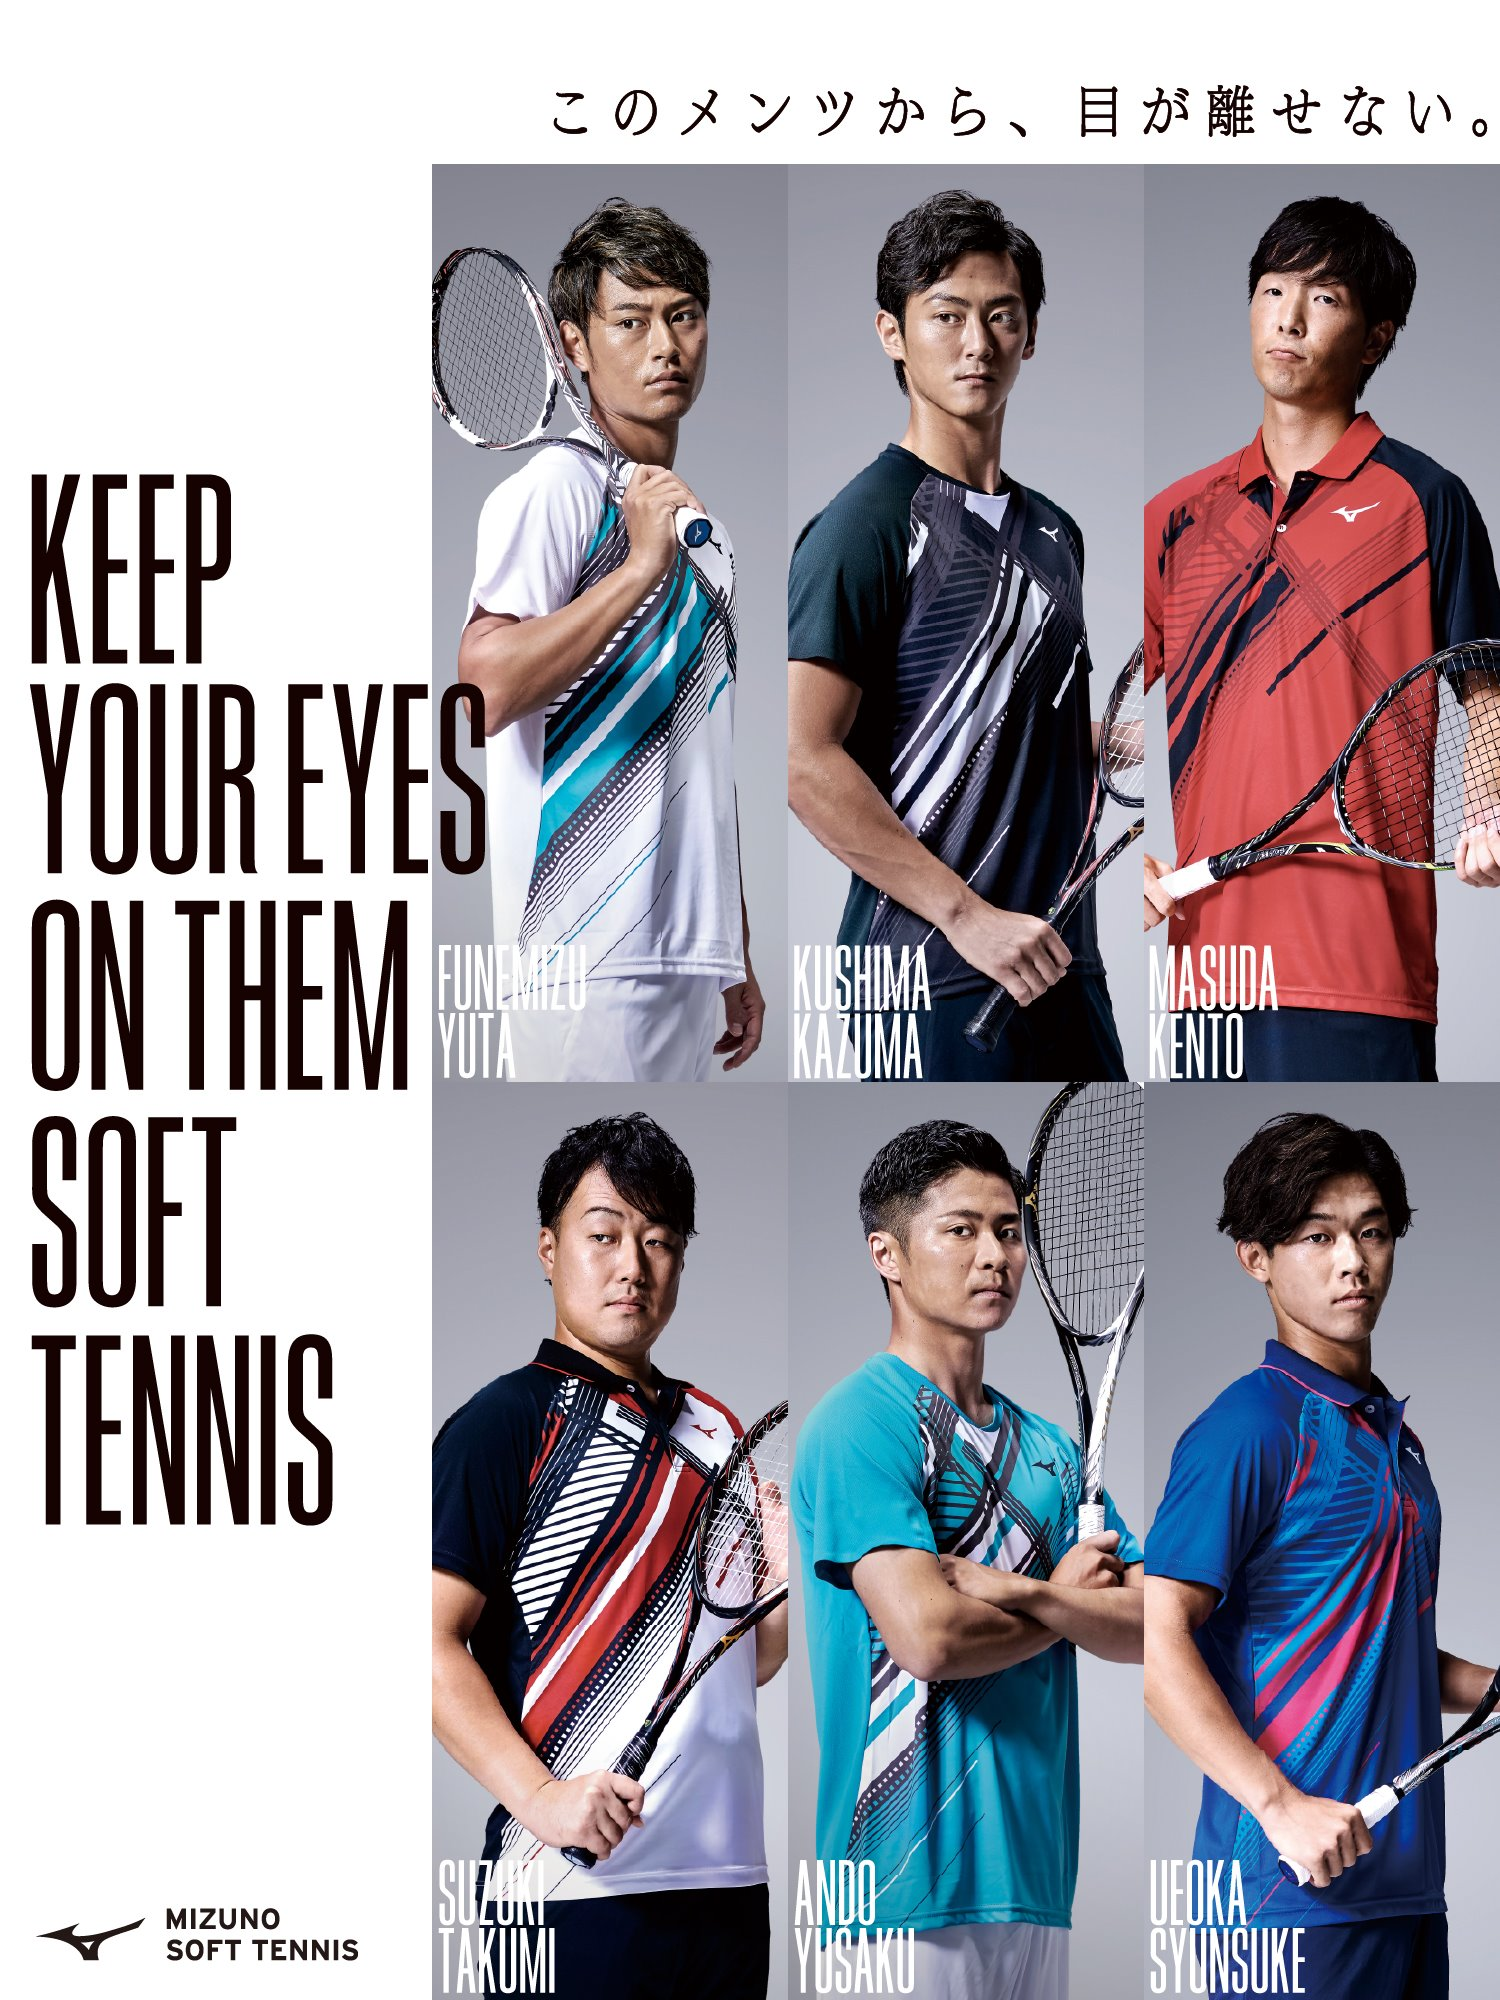 KEEP YOUR EYES ON TEAM SOFT TENNIS